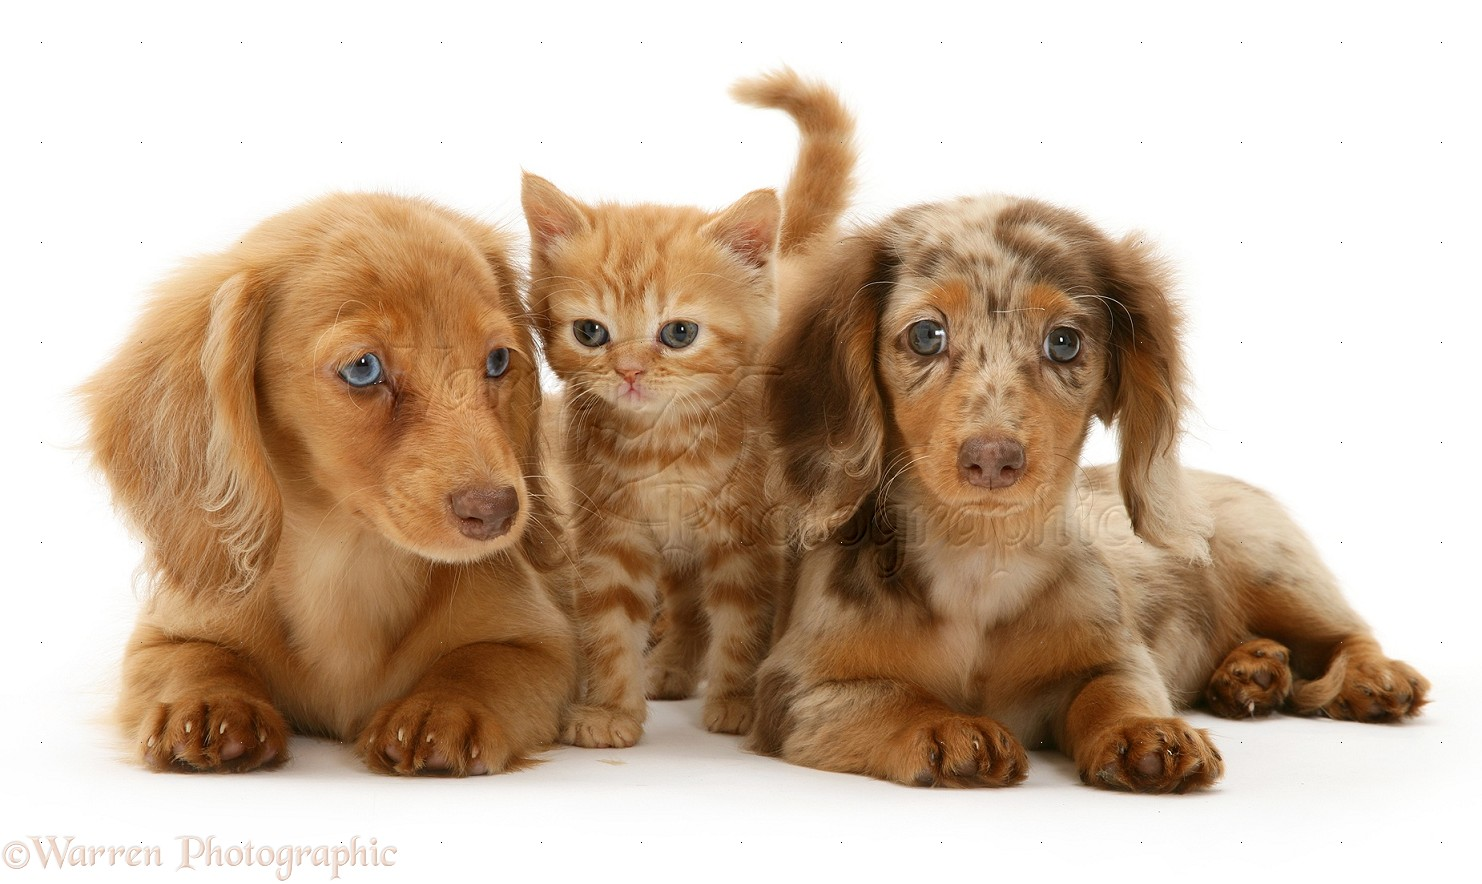 Pets Dachshund Pups And Ginger Kitten Photo Wp12712